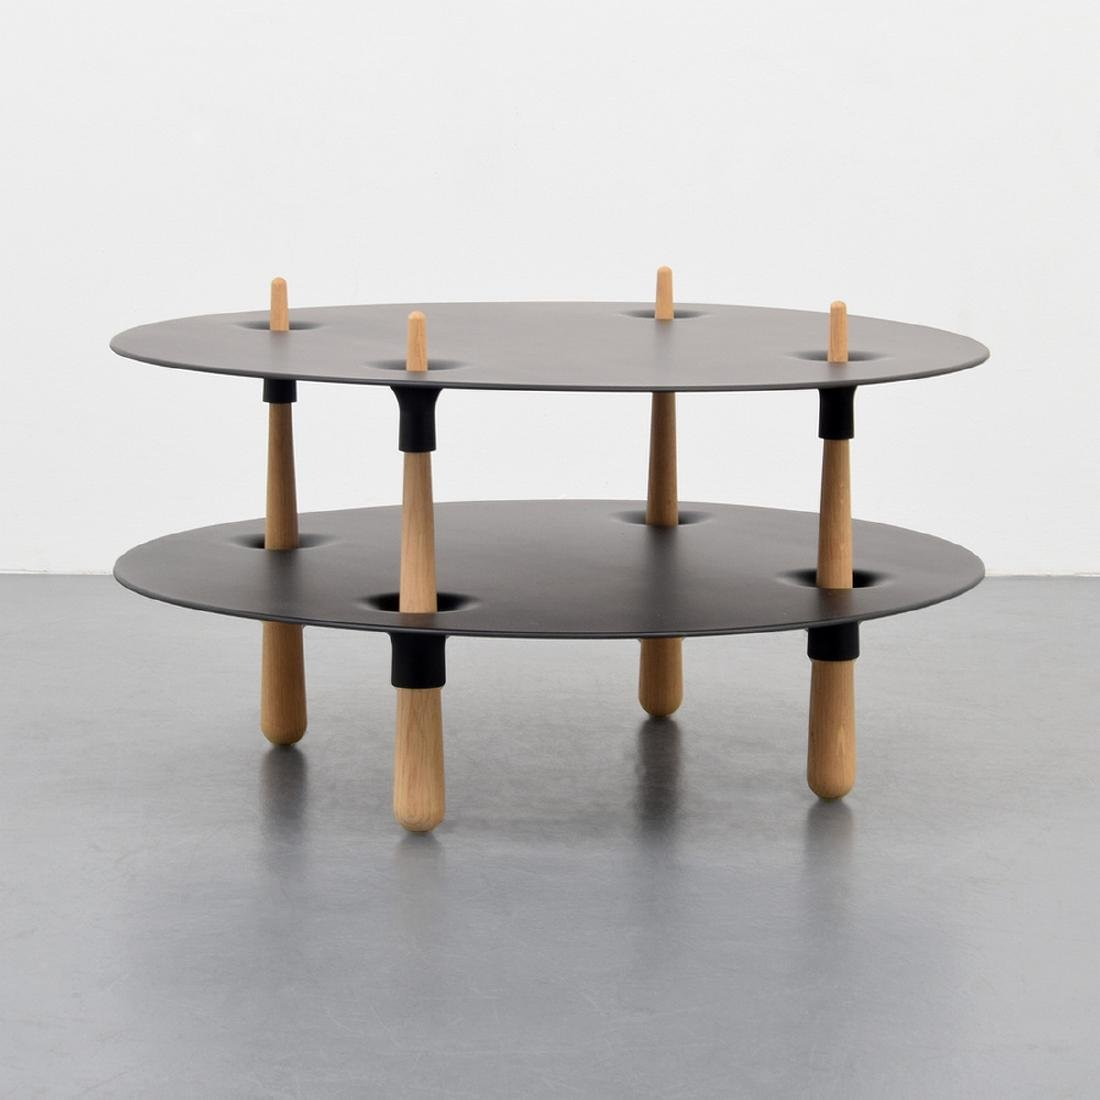 Lawrence Laske Prototype Occasional Table - 4